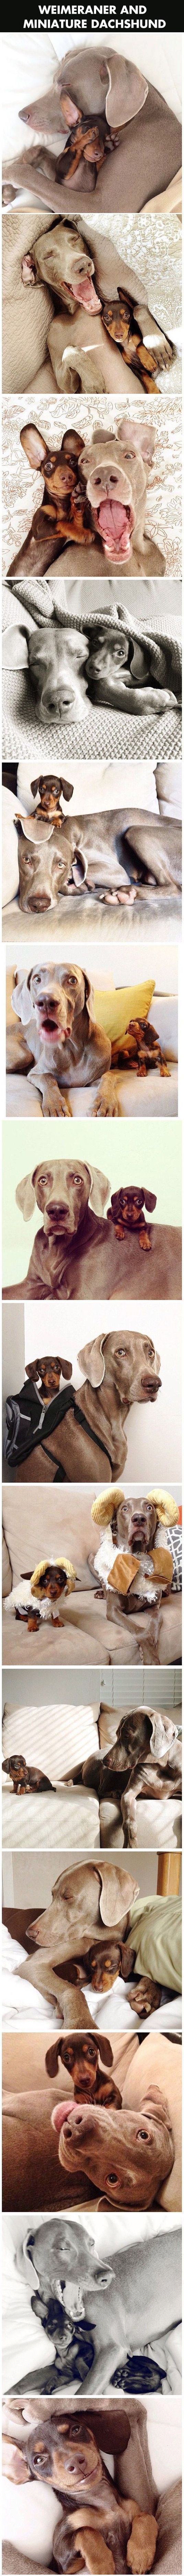 My heart just melted… - Funny Stuff   Putting a smile on your face.: Best Friends, Dachshund, Bff, Doxie, Puppy, Weim, Animal